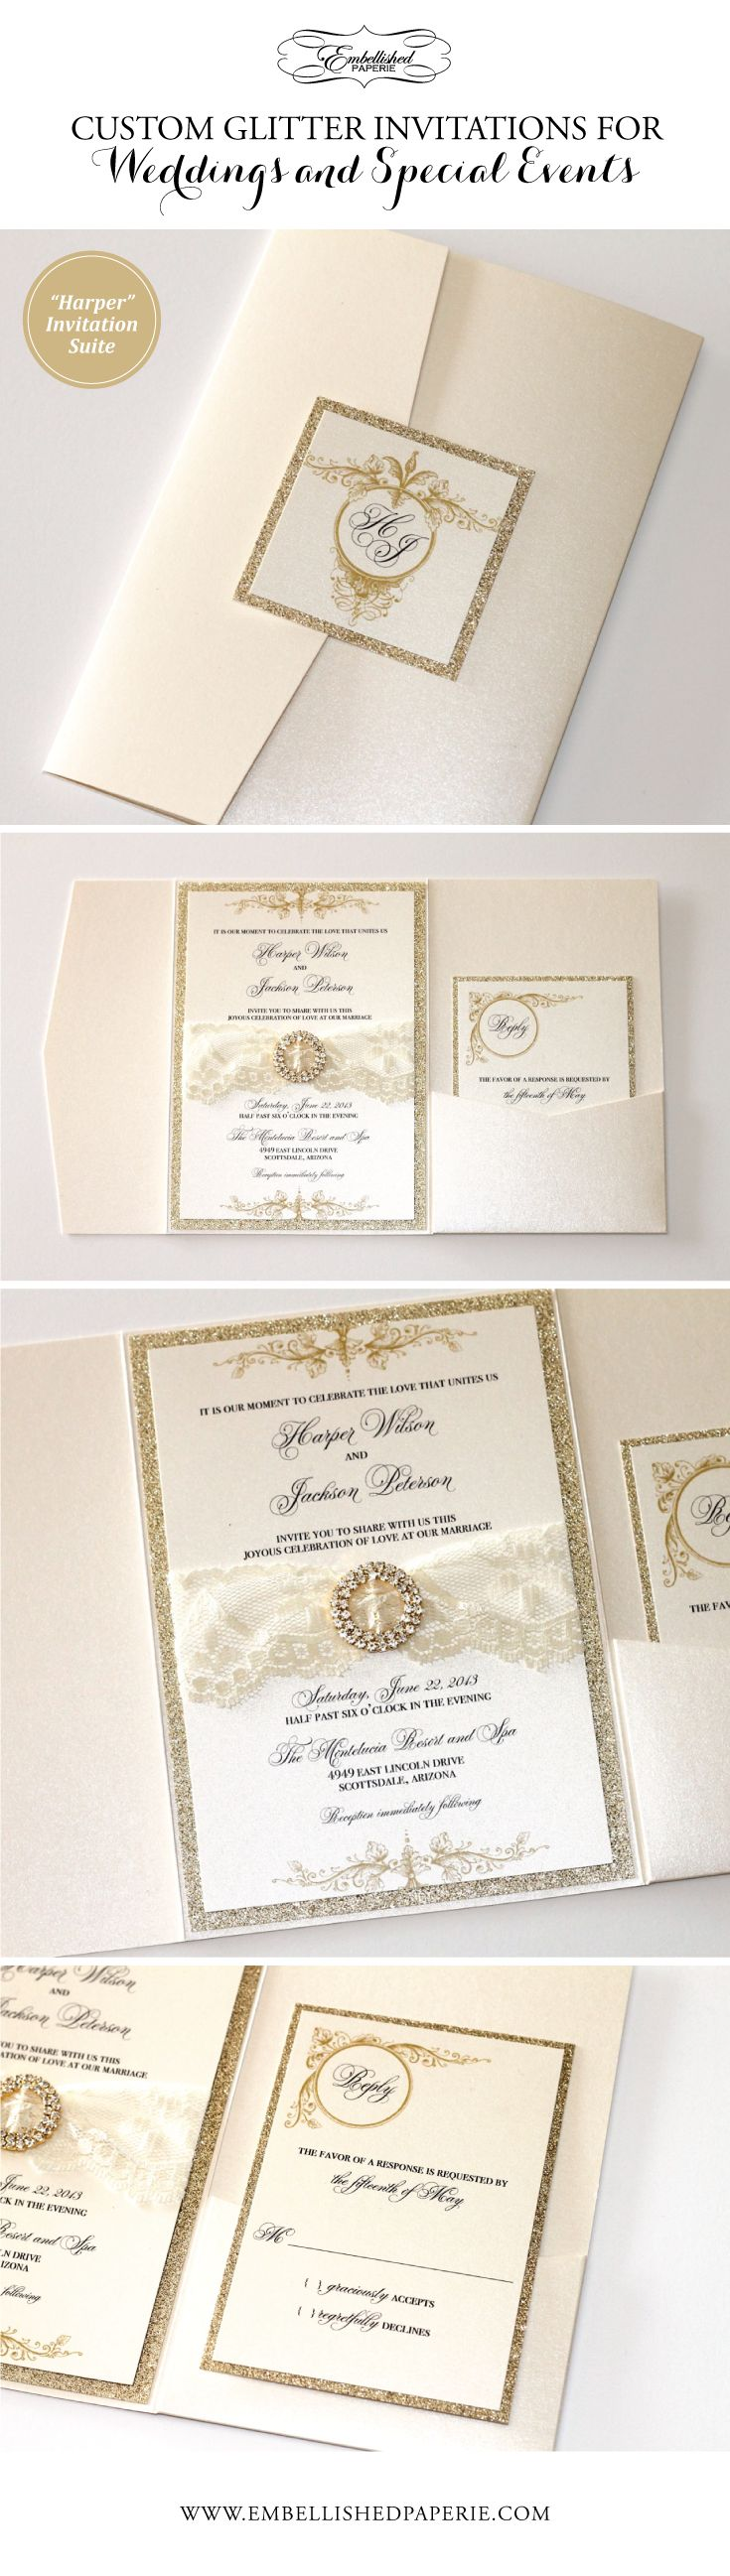 Vintage Lace Wedding Invitations With Gold Glitter. Ivory Metallic, Gold  Glitter Border, Embellished